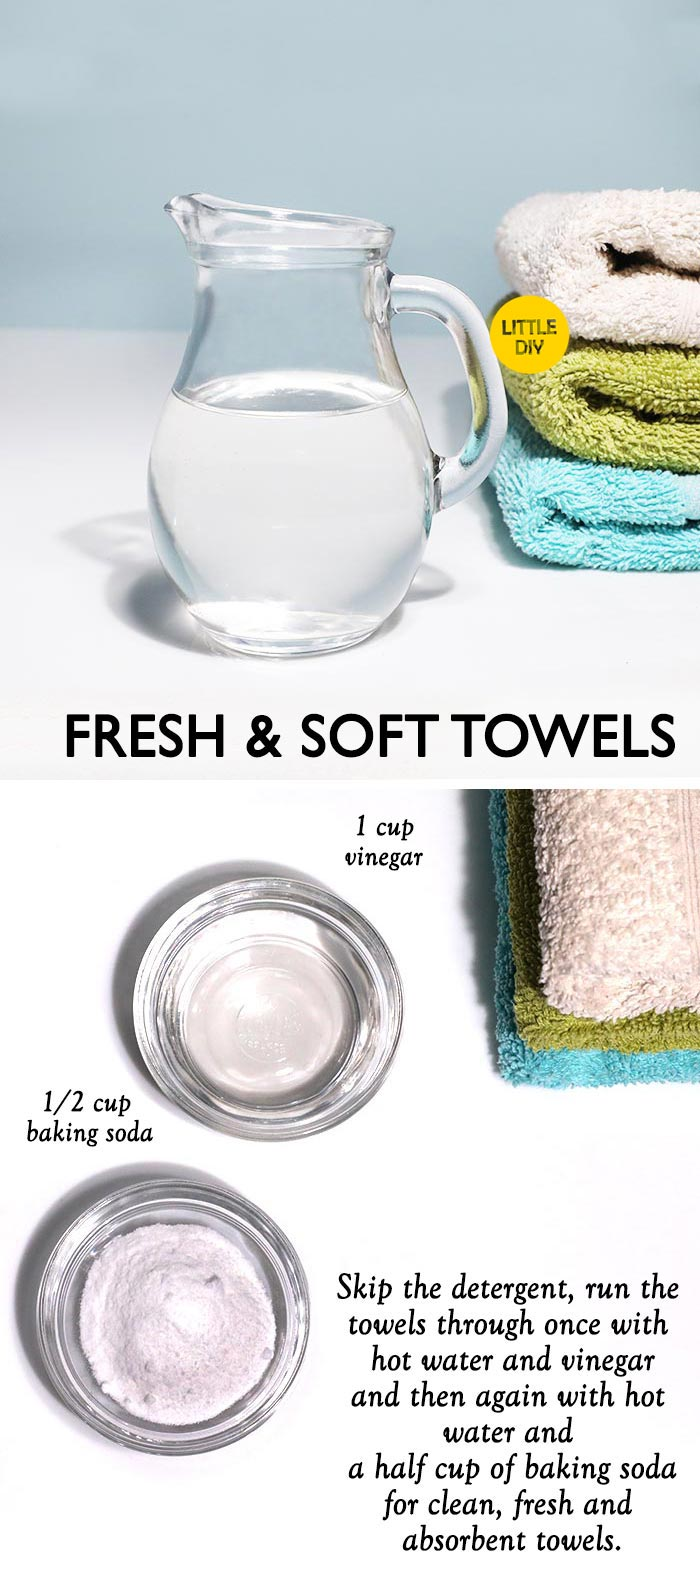 Fresh and soft towels with Vinegar